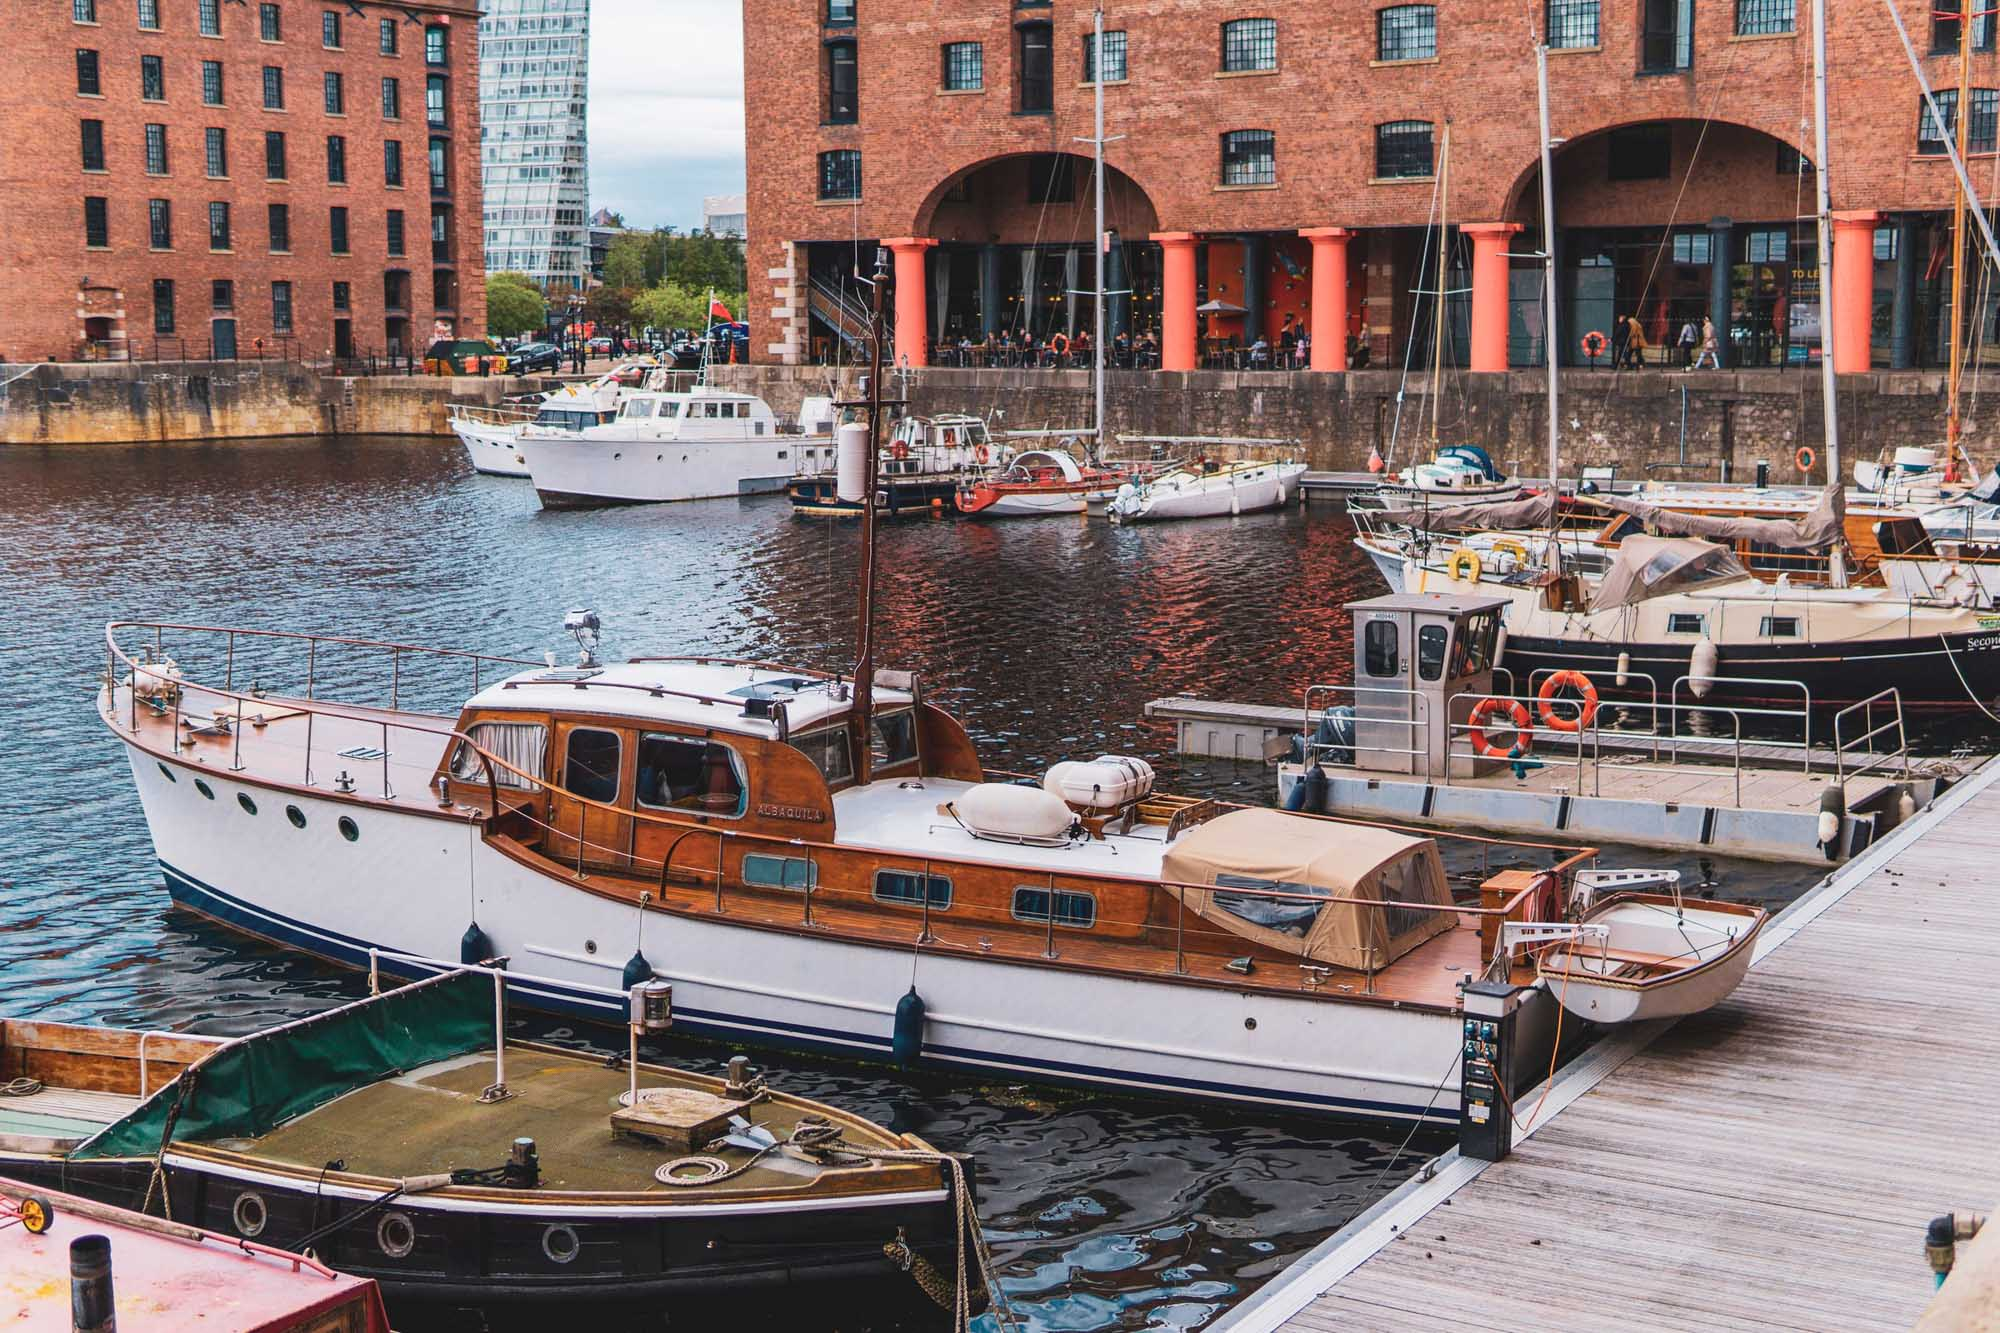 Liverpool On A Long Weekend. The Albert Docks